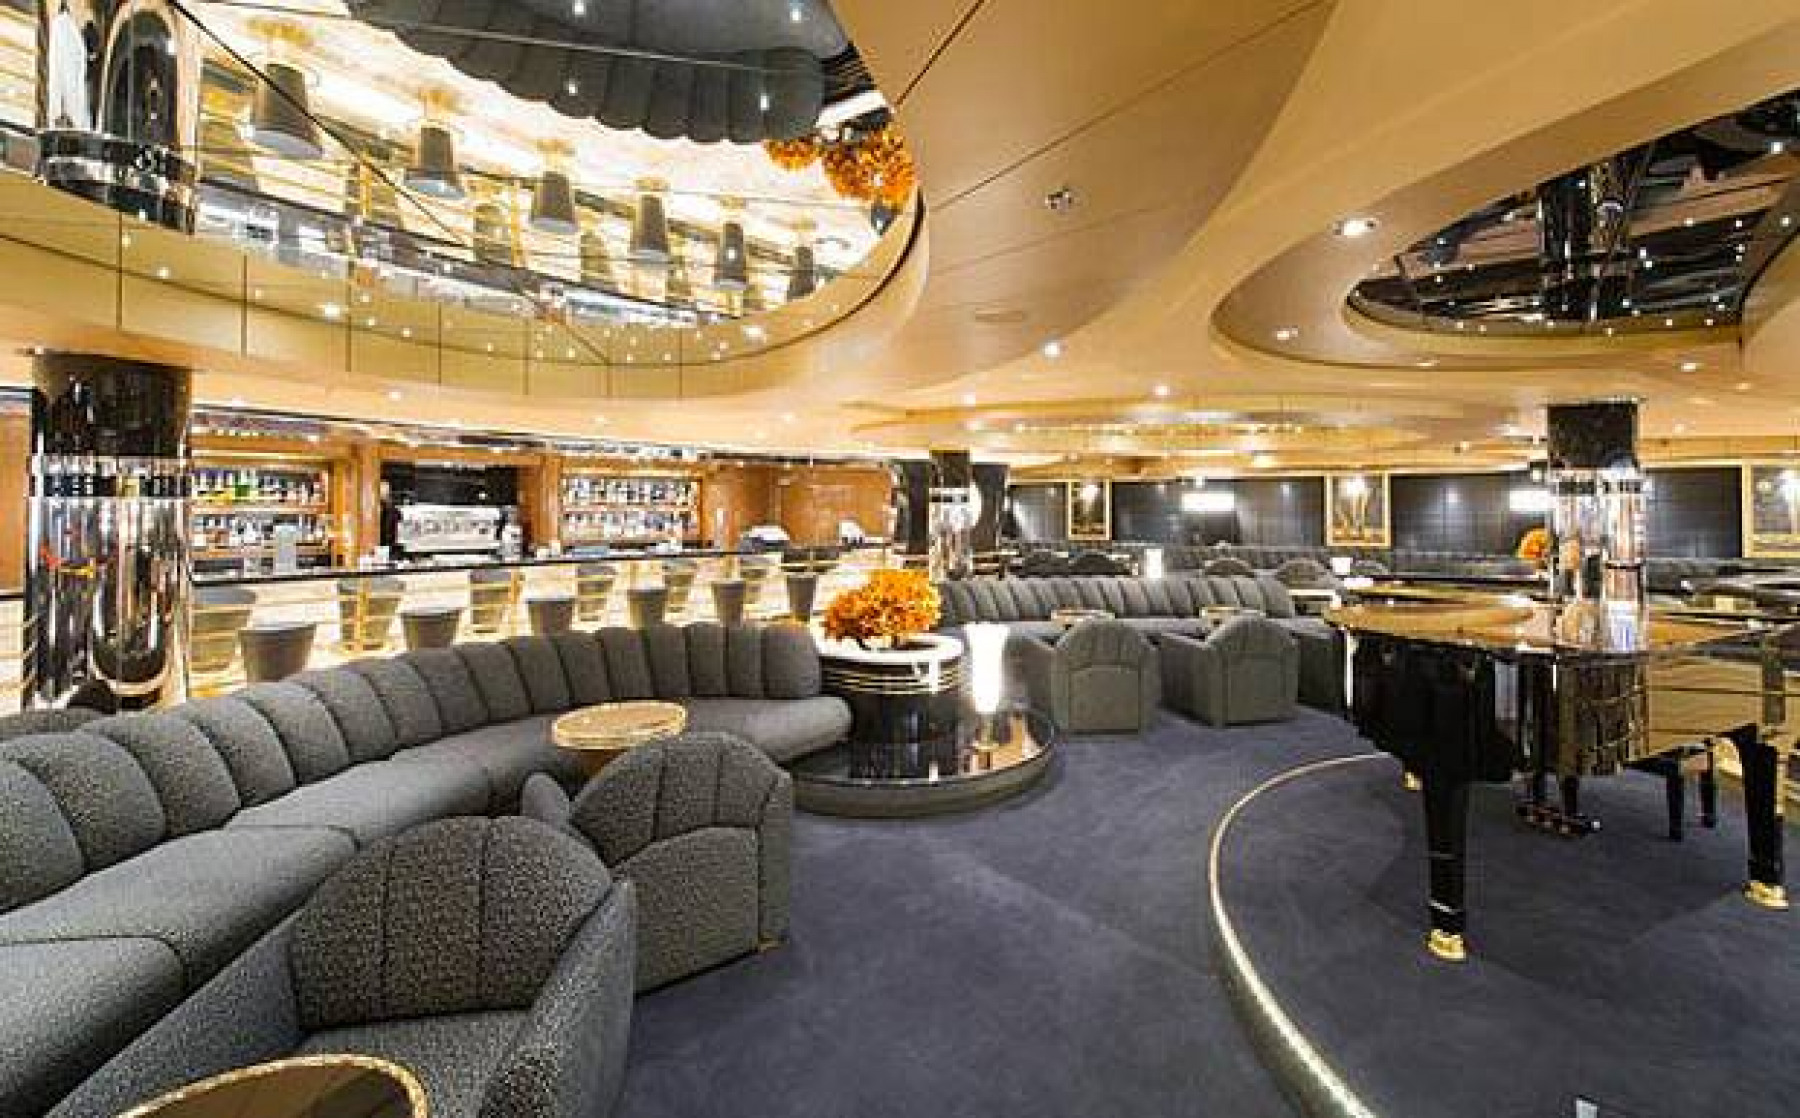 msc cruises fantasia class dorado piano bar.jpg